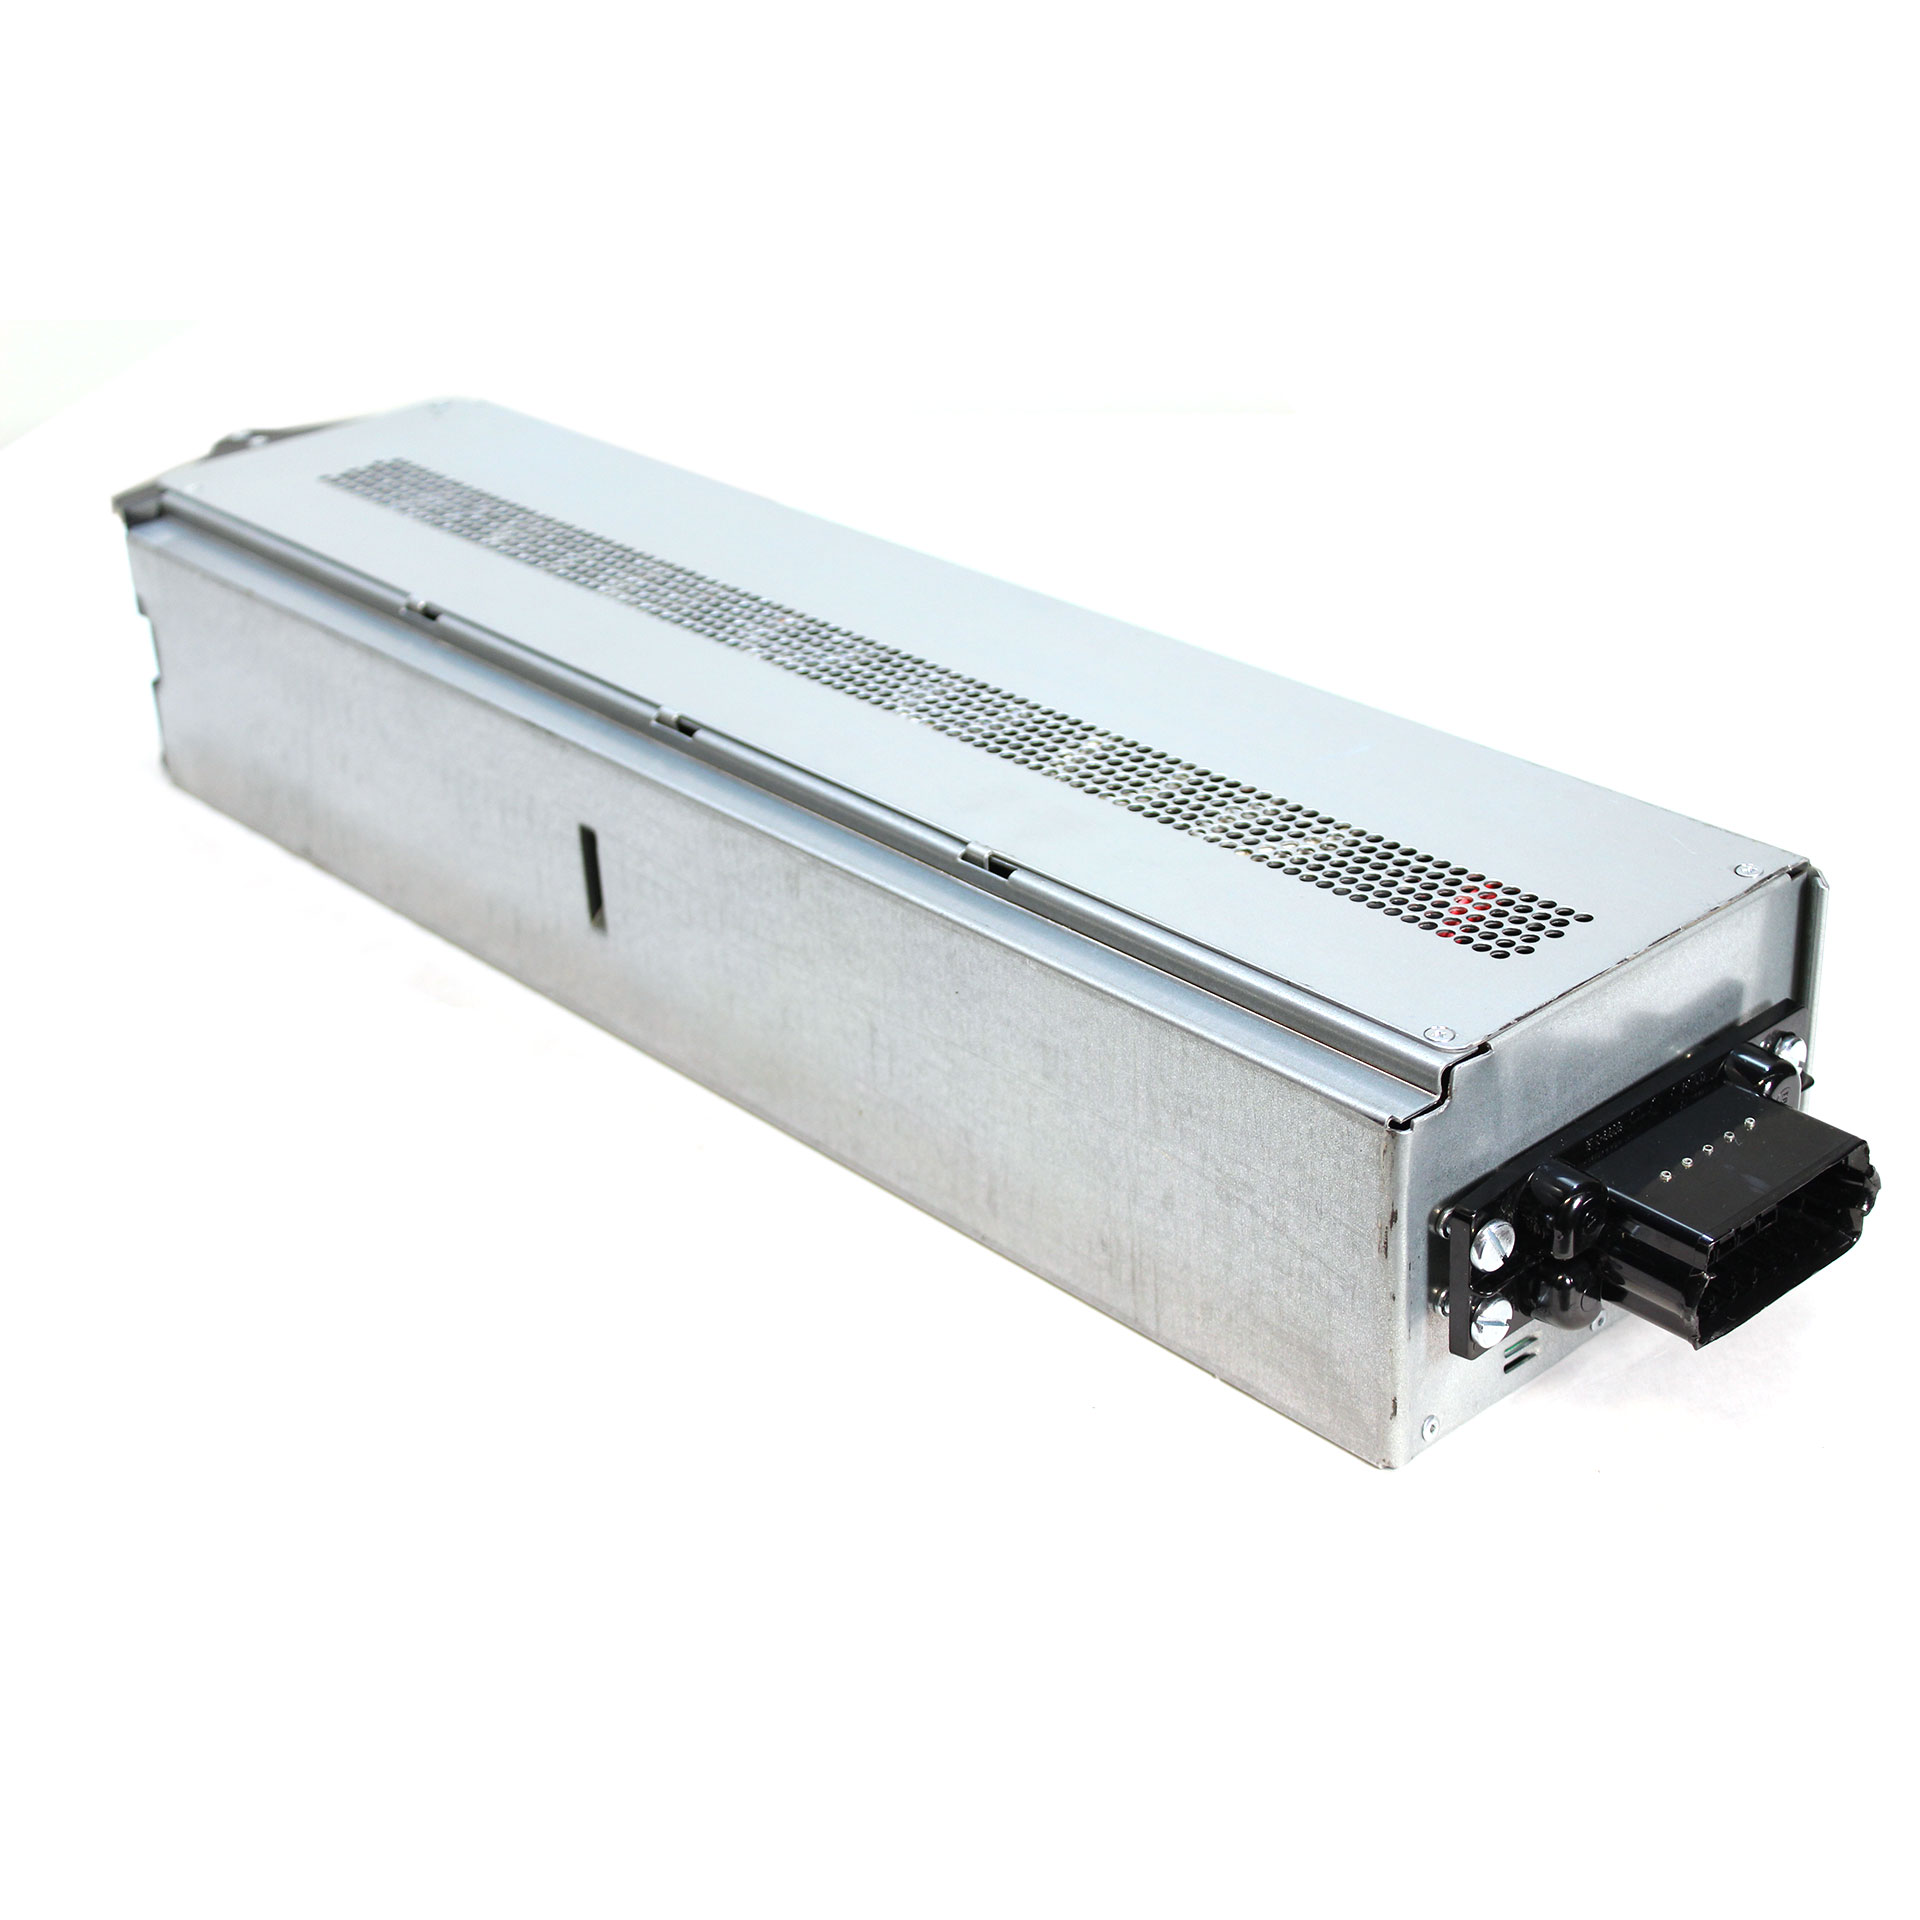 APC SYBTU1-PLP Symmetra PX Battery Unit Replacement for UPS